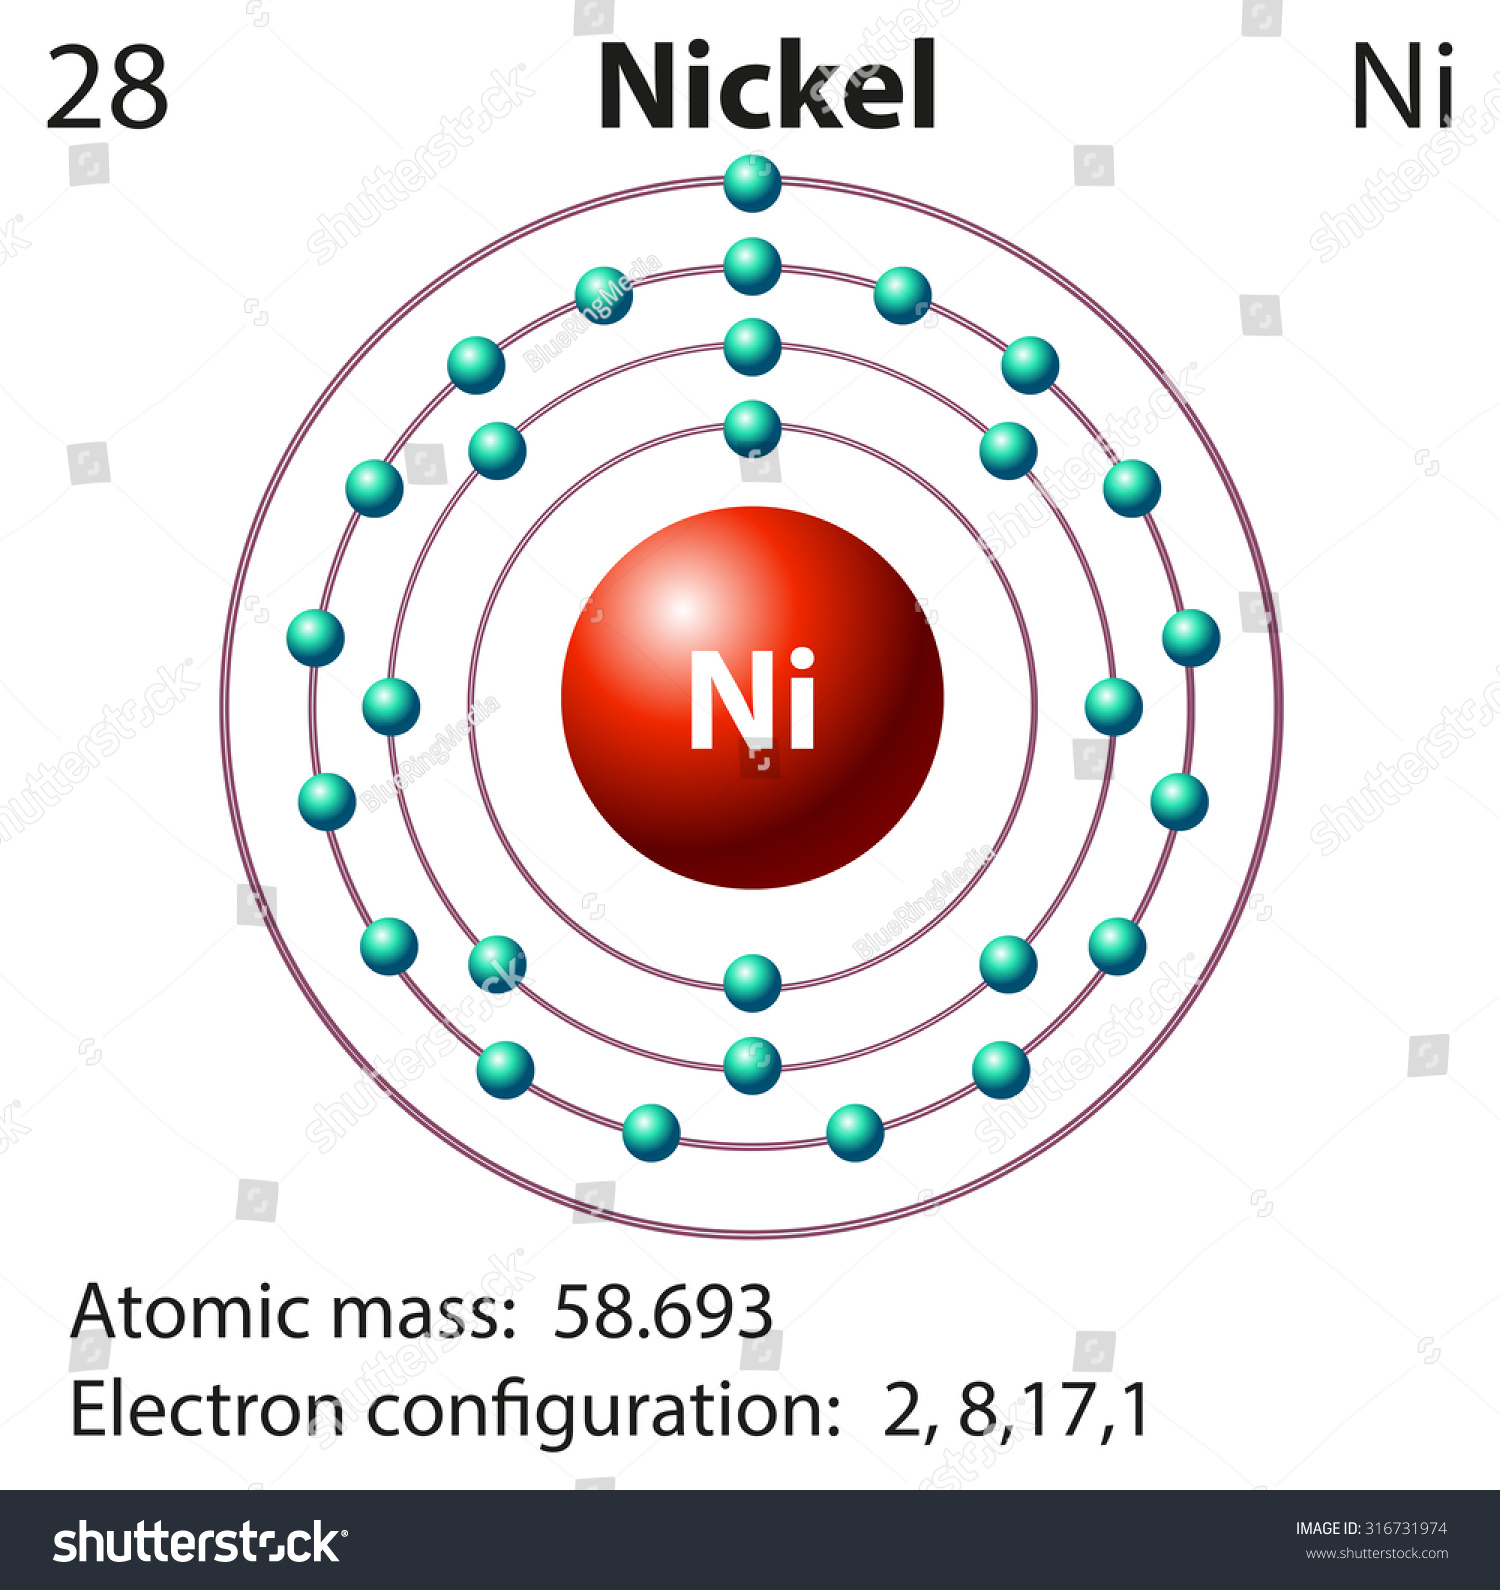 Royalty Free Symbol And Electron Diagram For Nickel 316731974